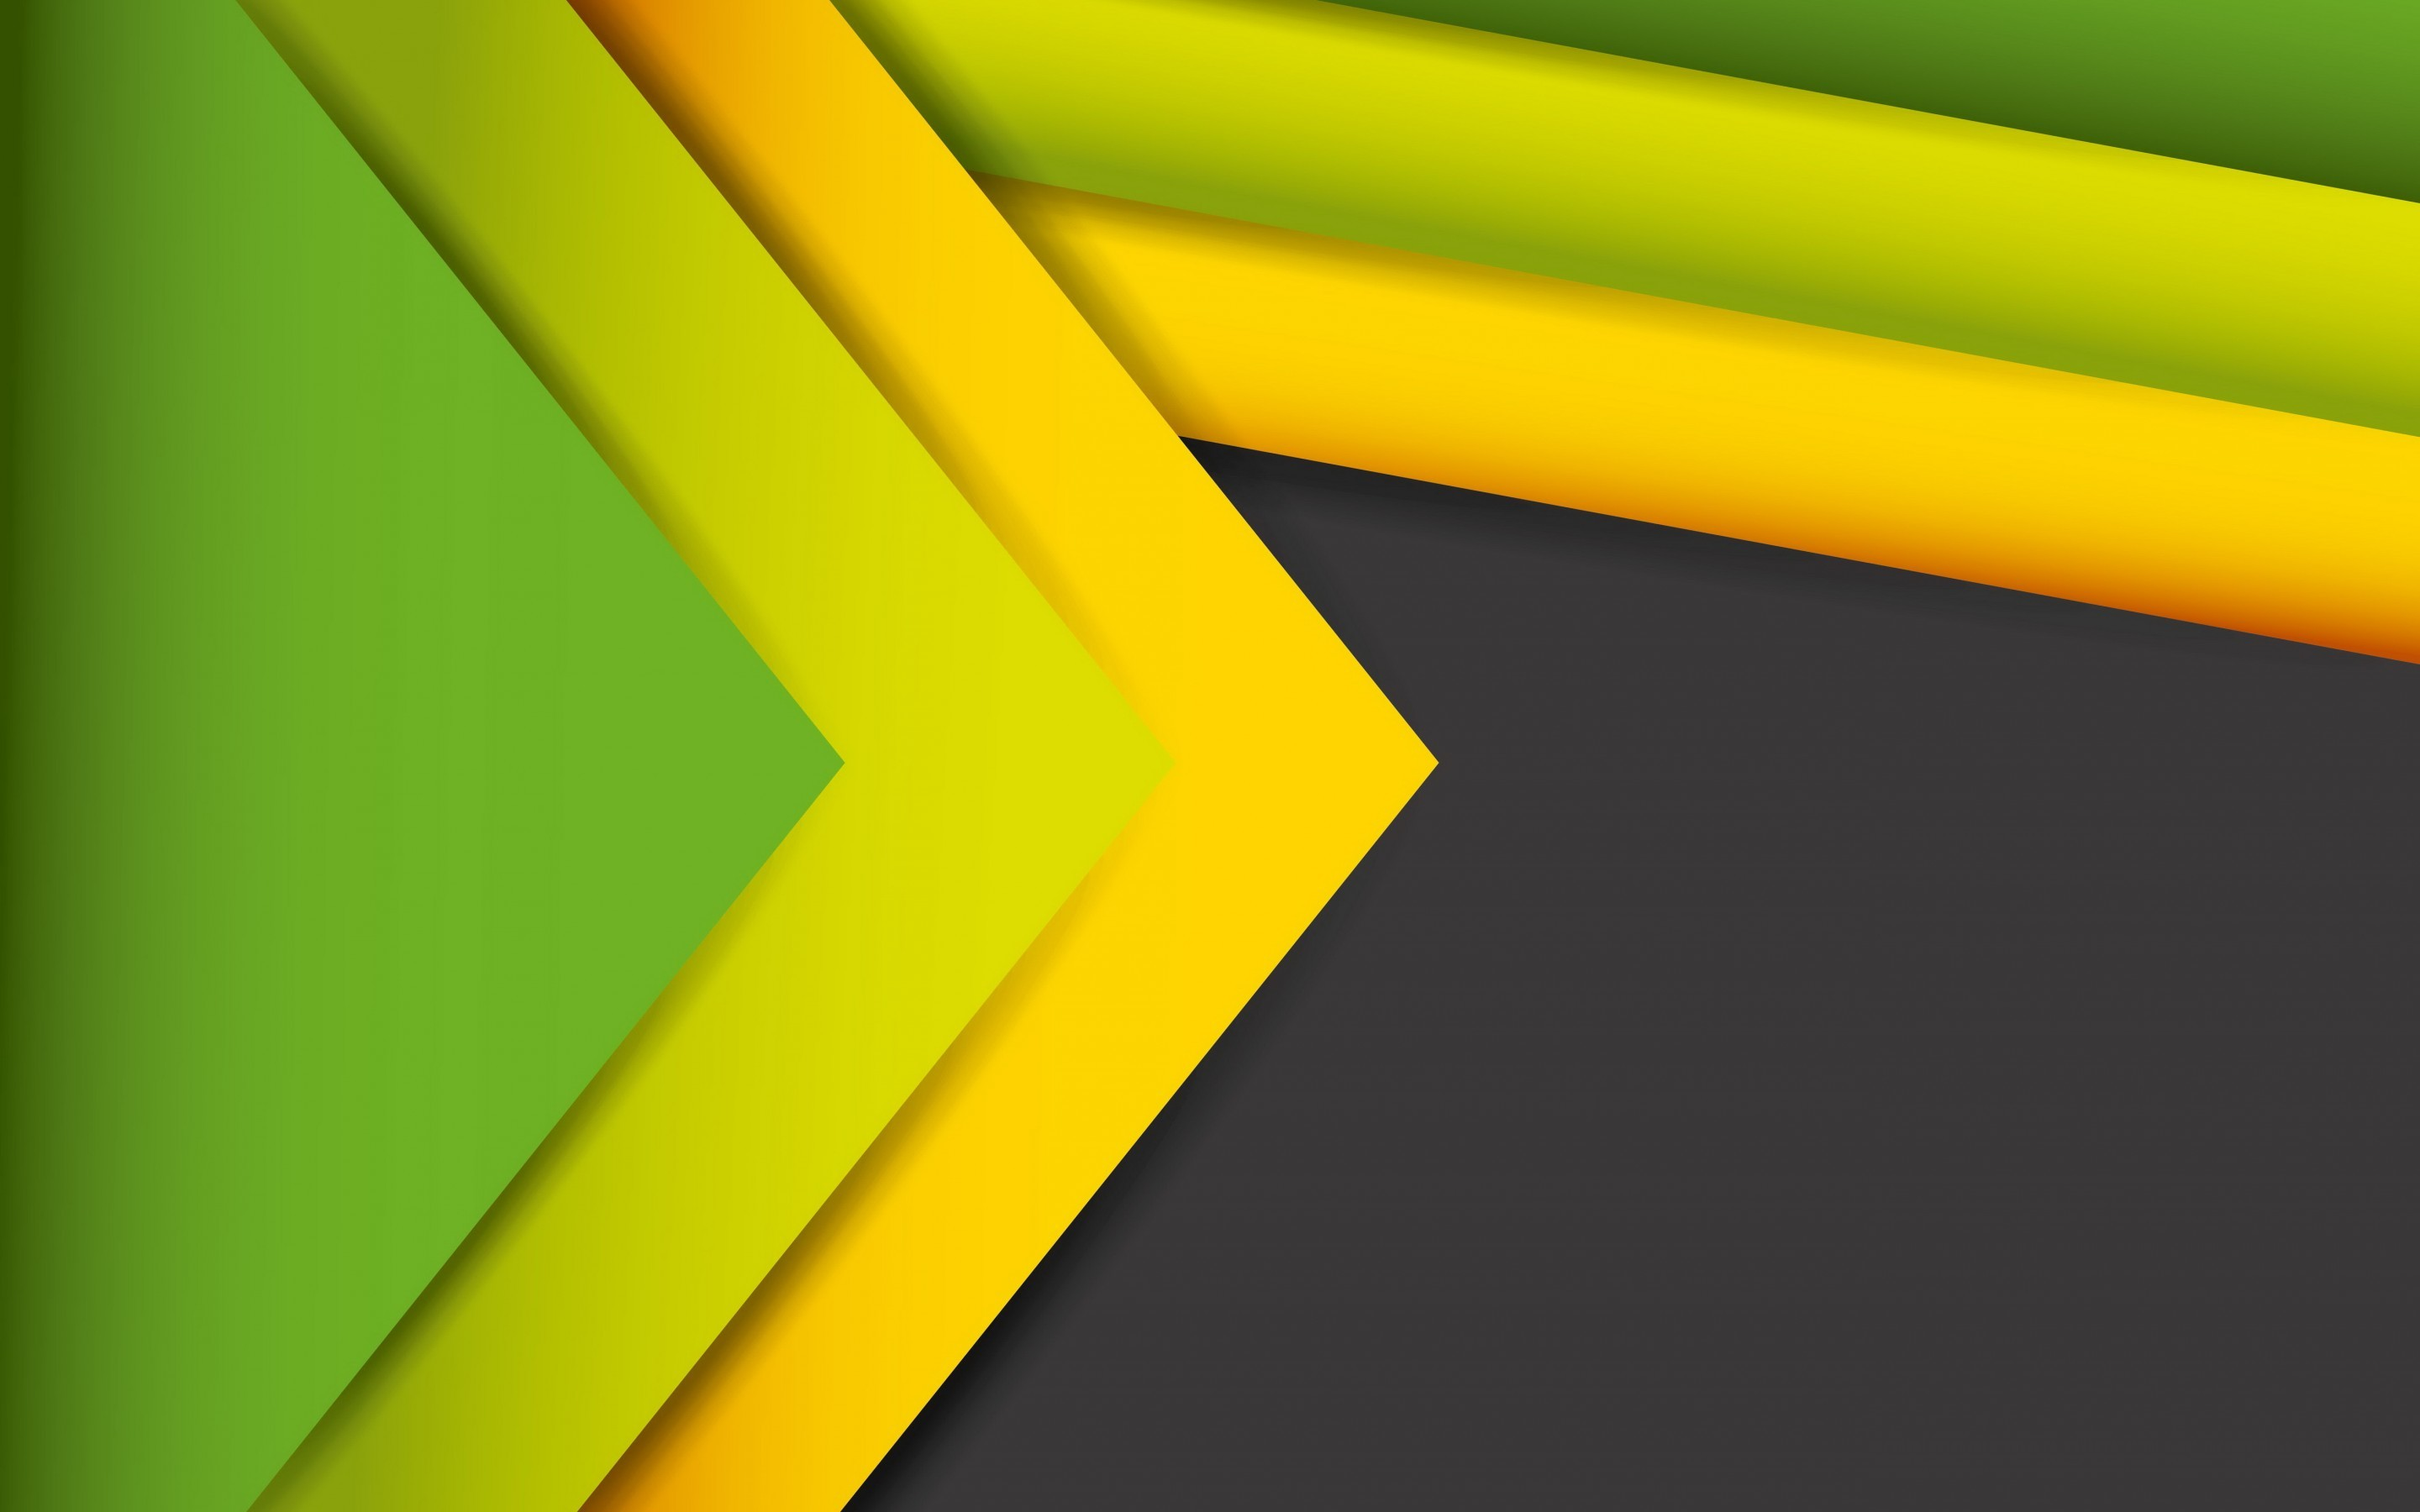 Green And Yellow Wallpaper 71 Images